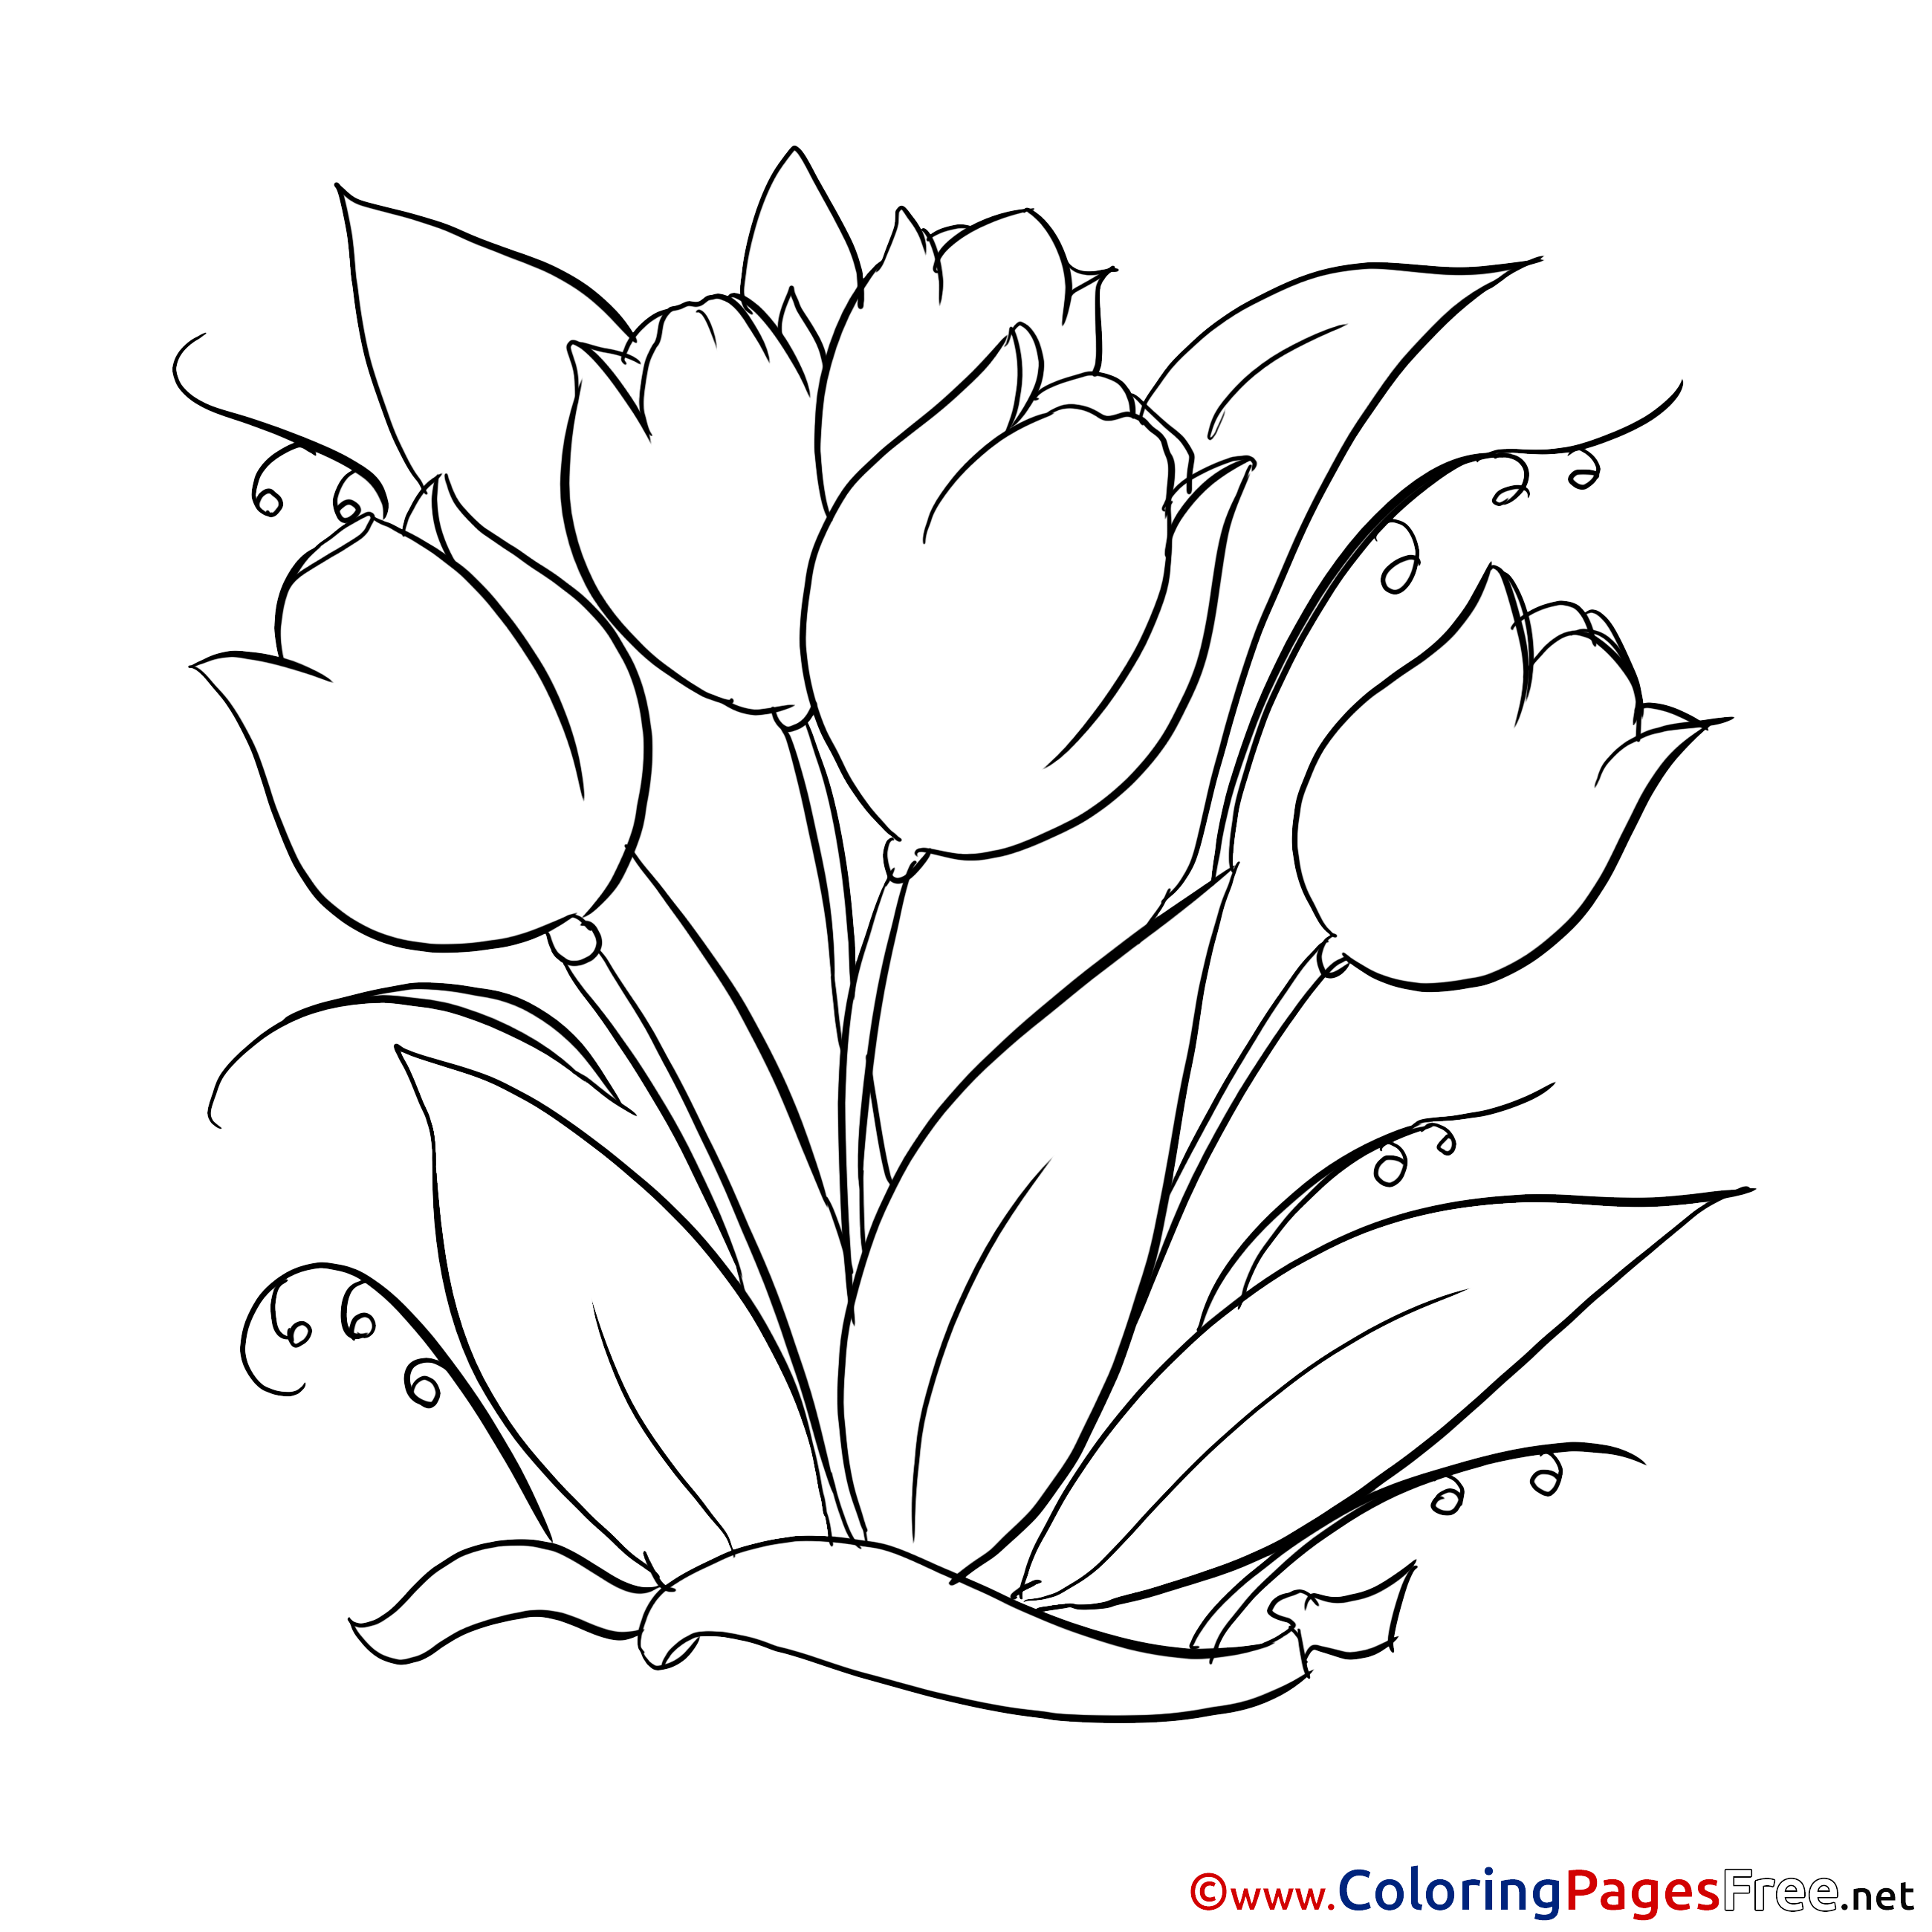 tulip coloring pictures painting tulips download printable coloring pages pictures coloring tulip